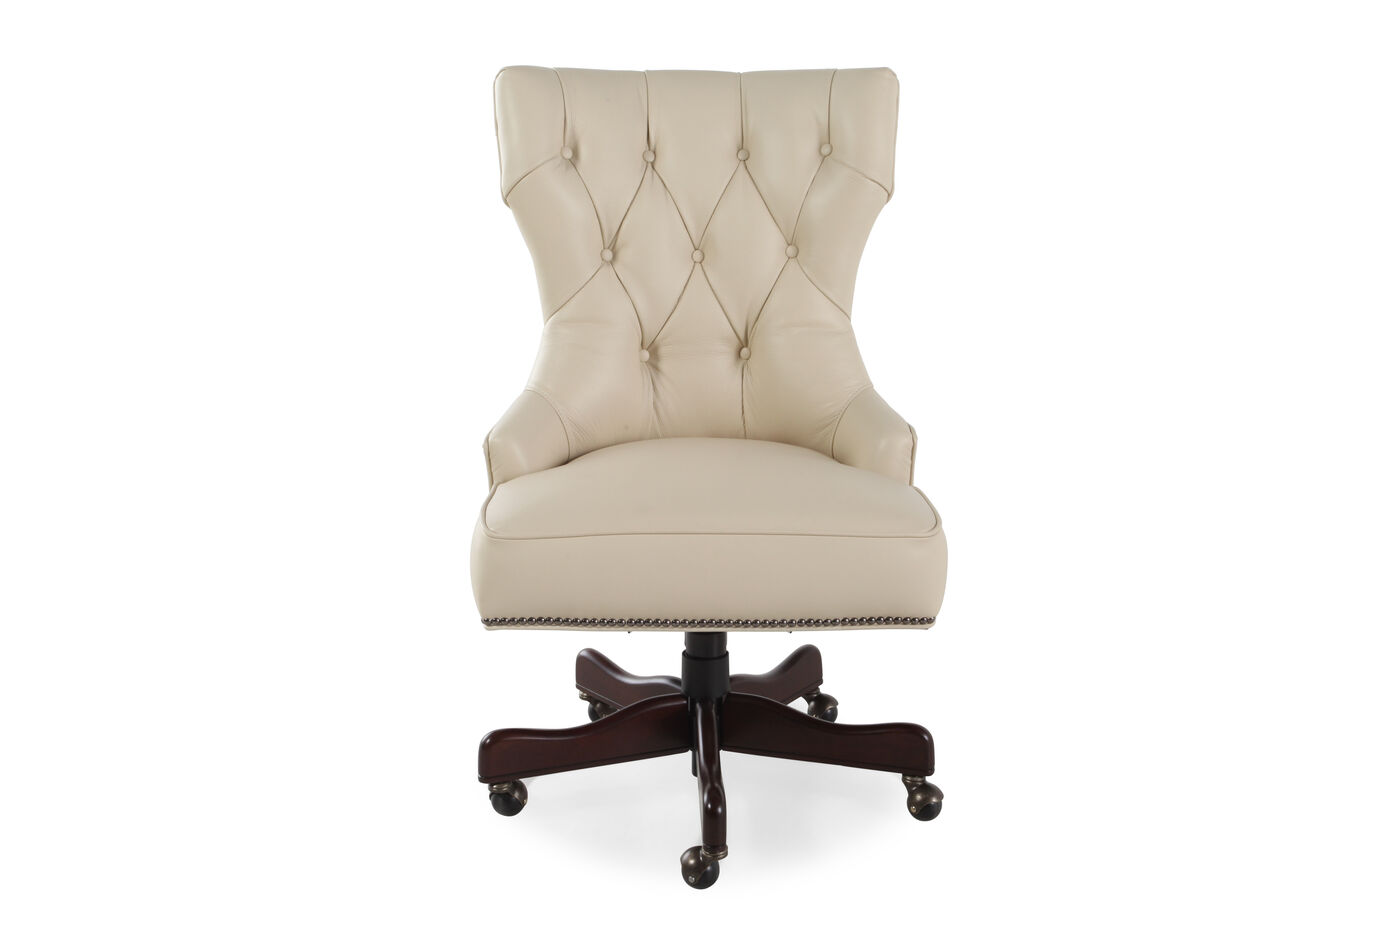 Leather Button Tufted Swivel Tilt Desk Chair In Ivory